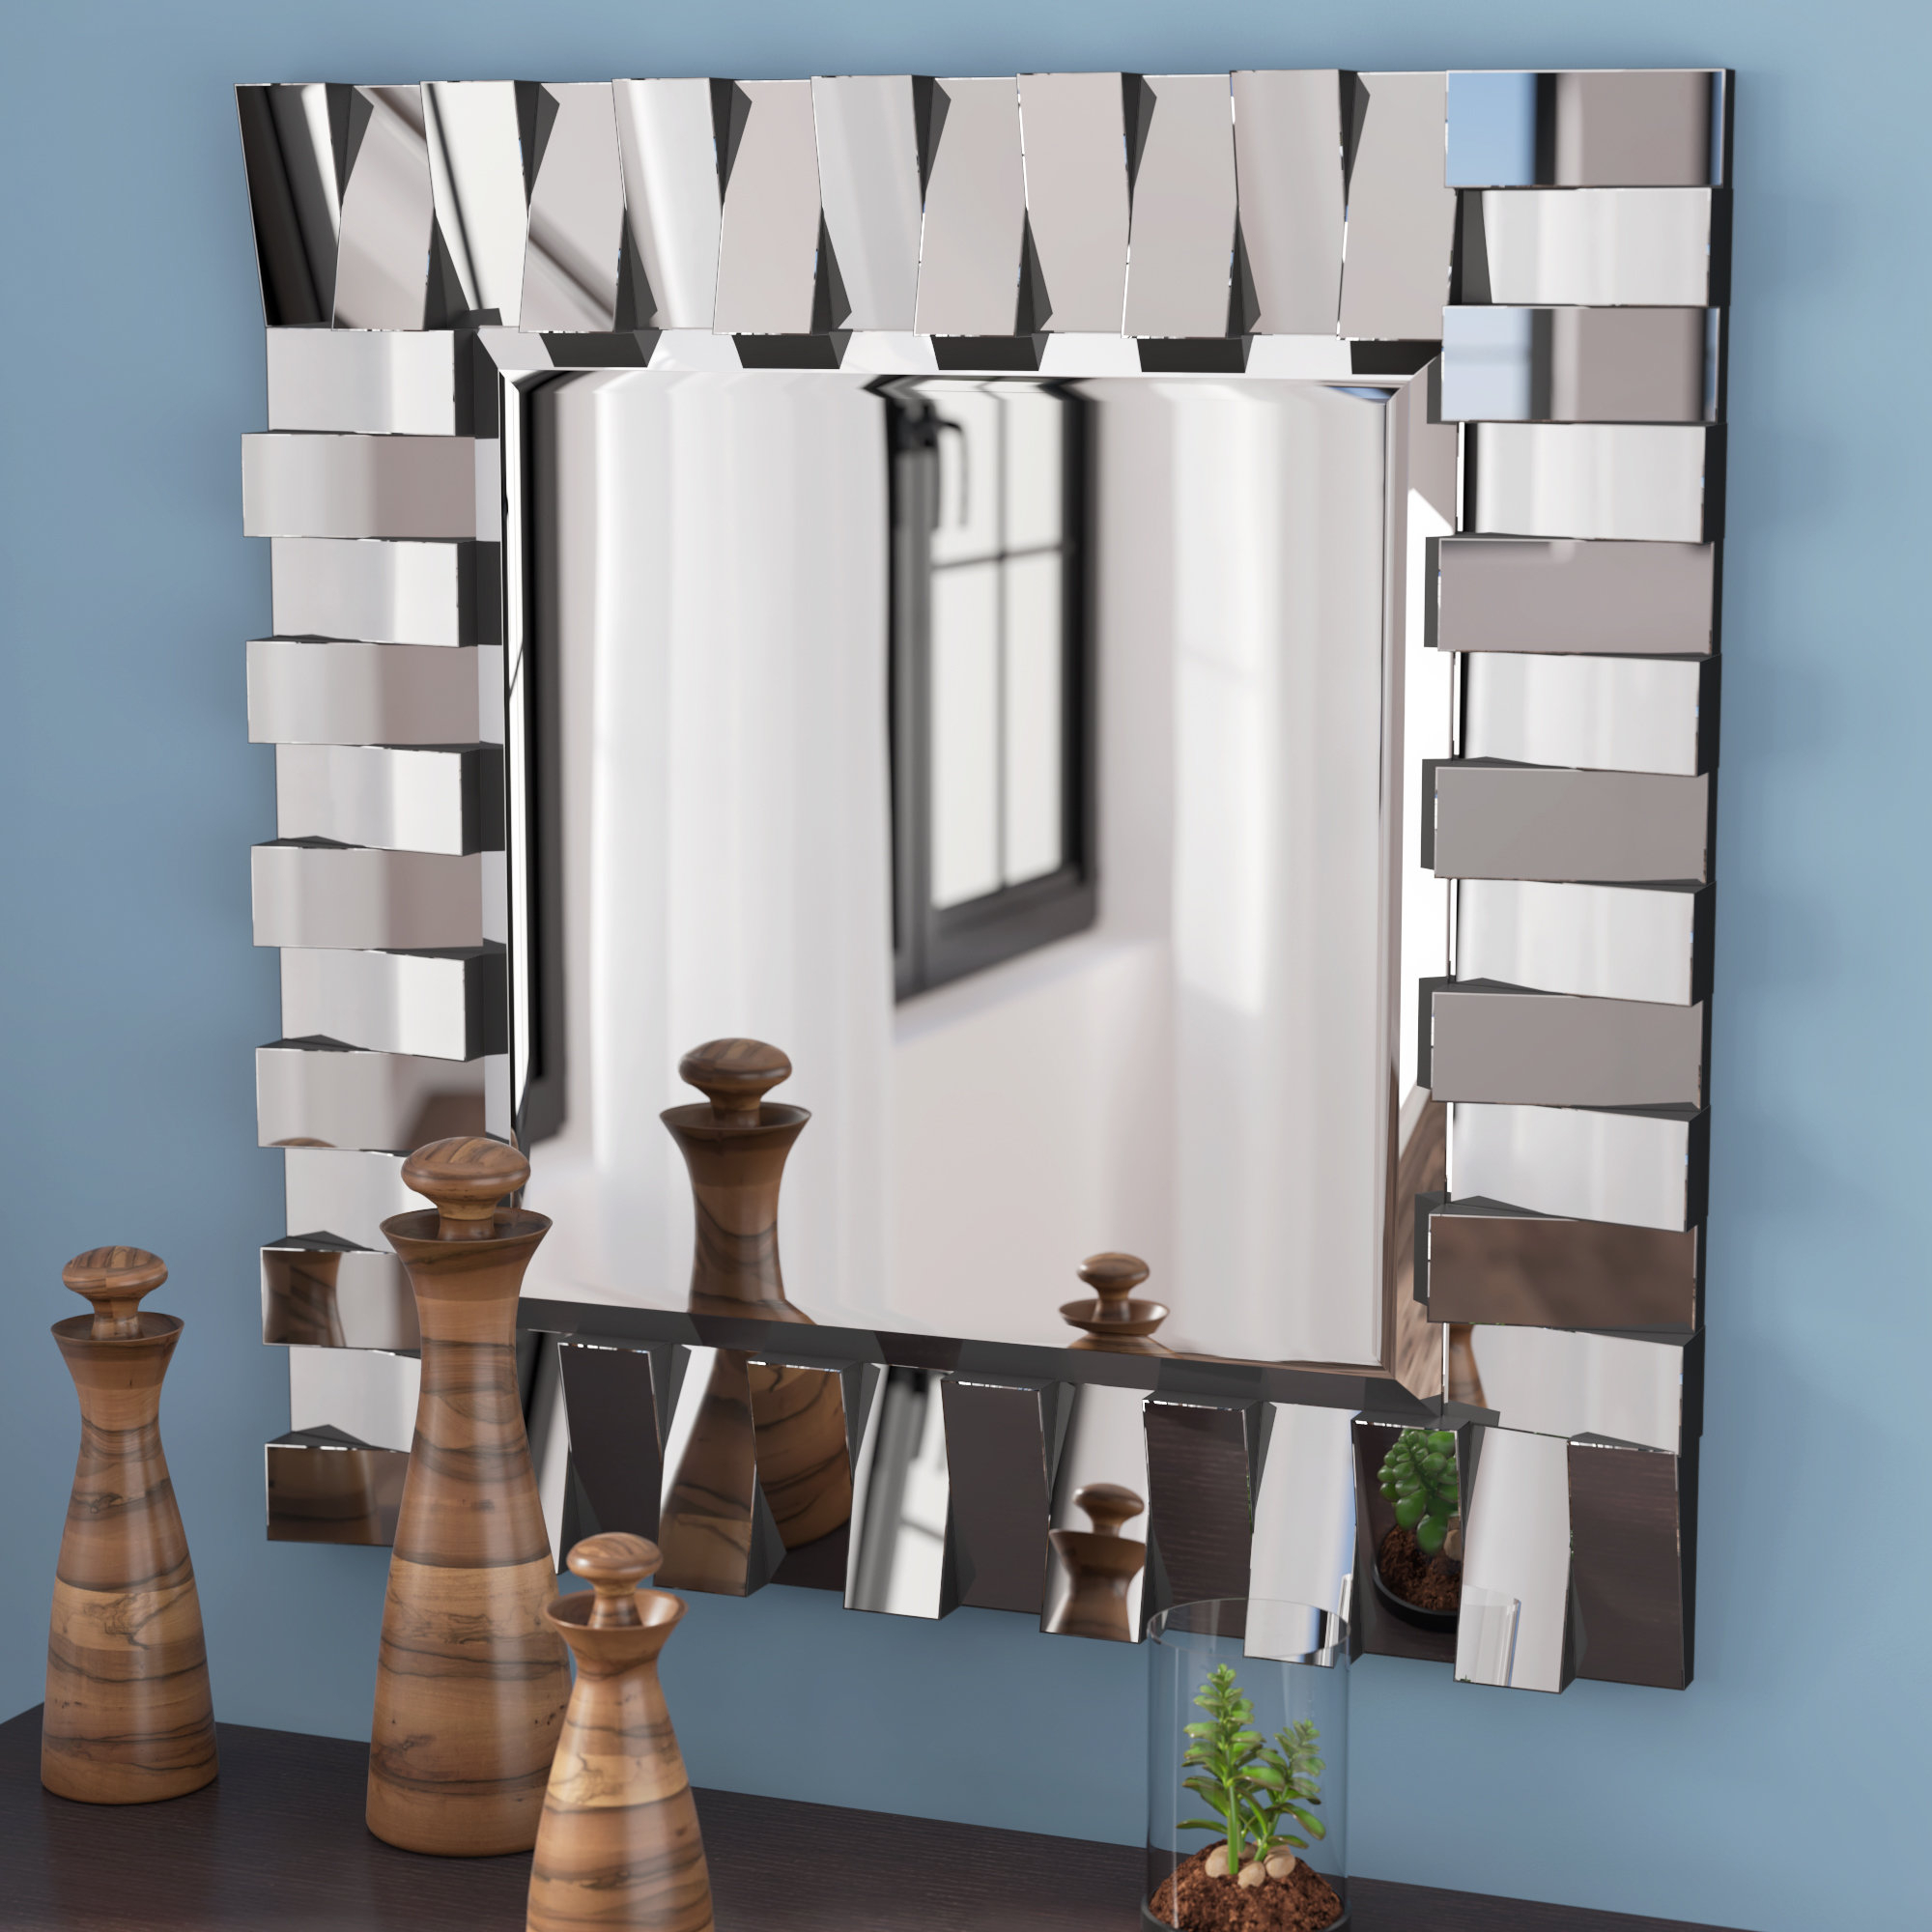 Modern & Contemporary Beveled Wall Mirror Throughout Modern & Contemporary Beveled Wall Mirrors (View 3 of 20)